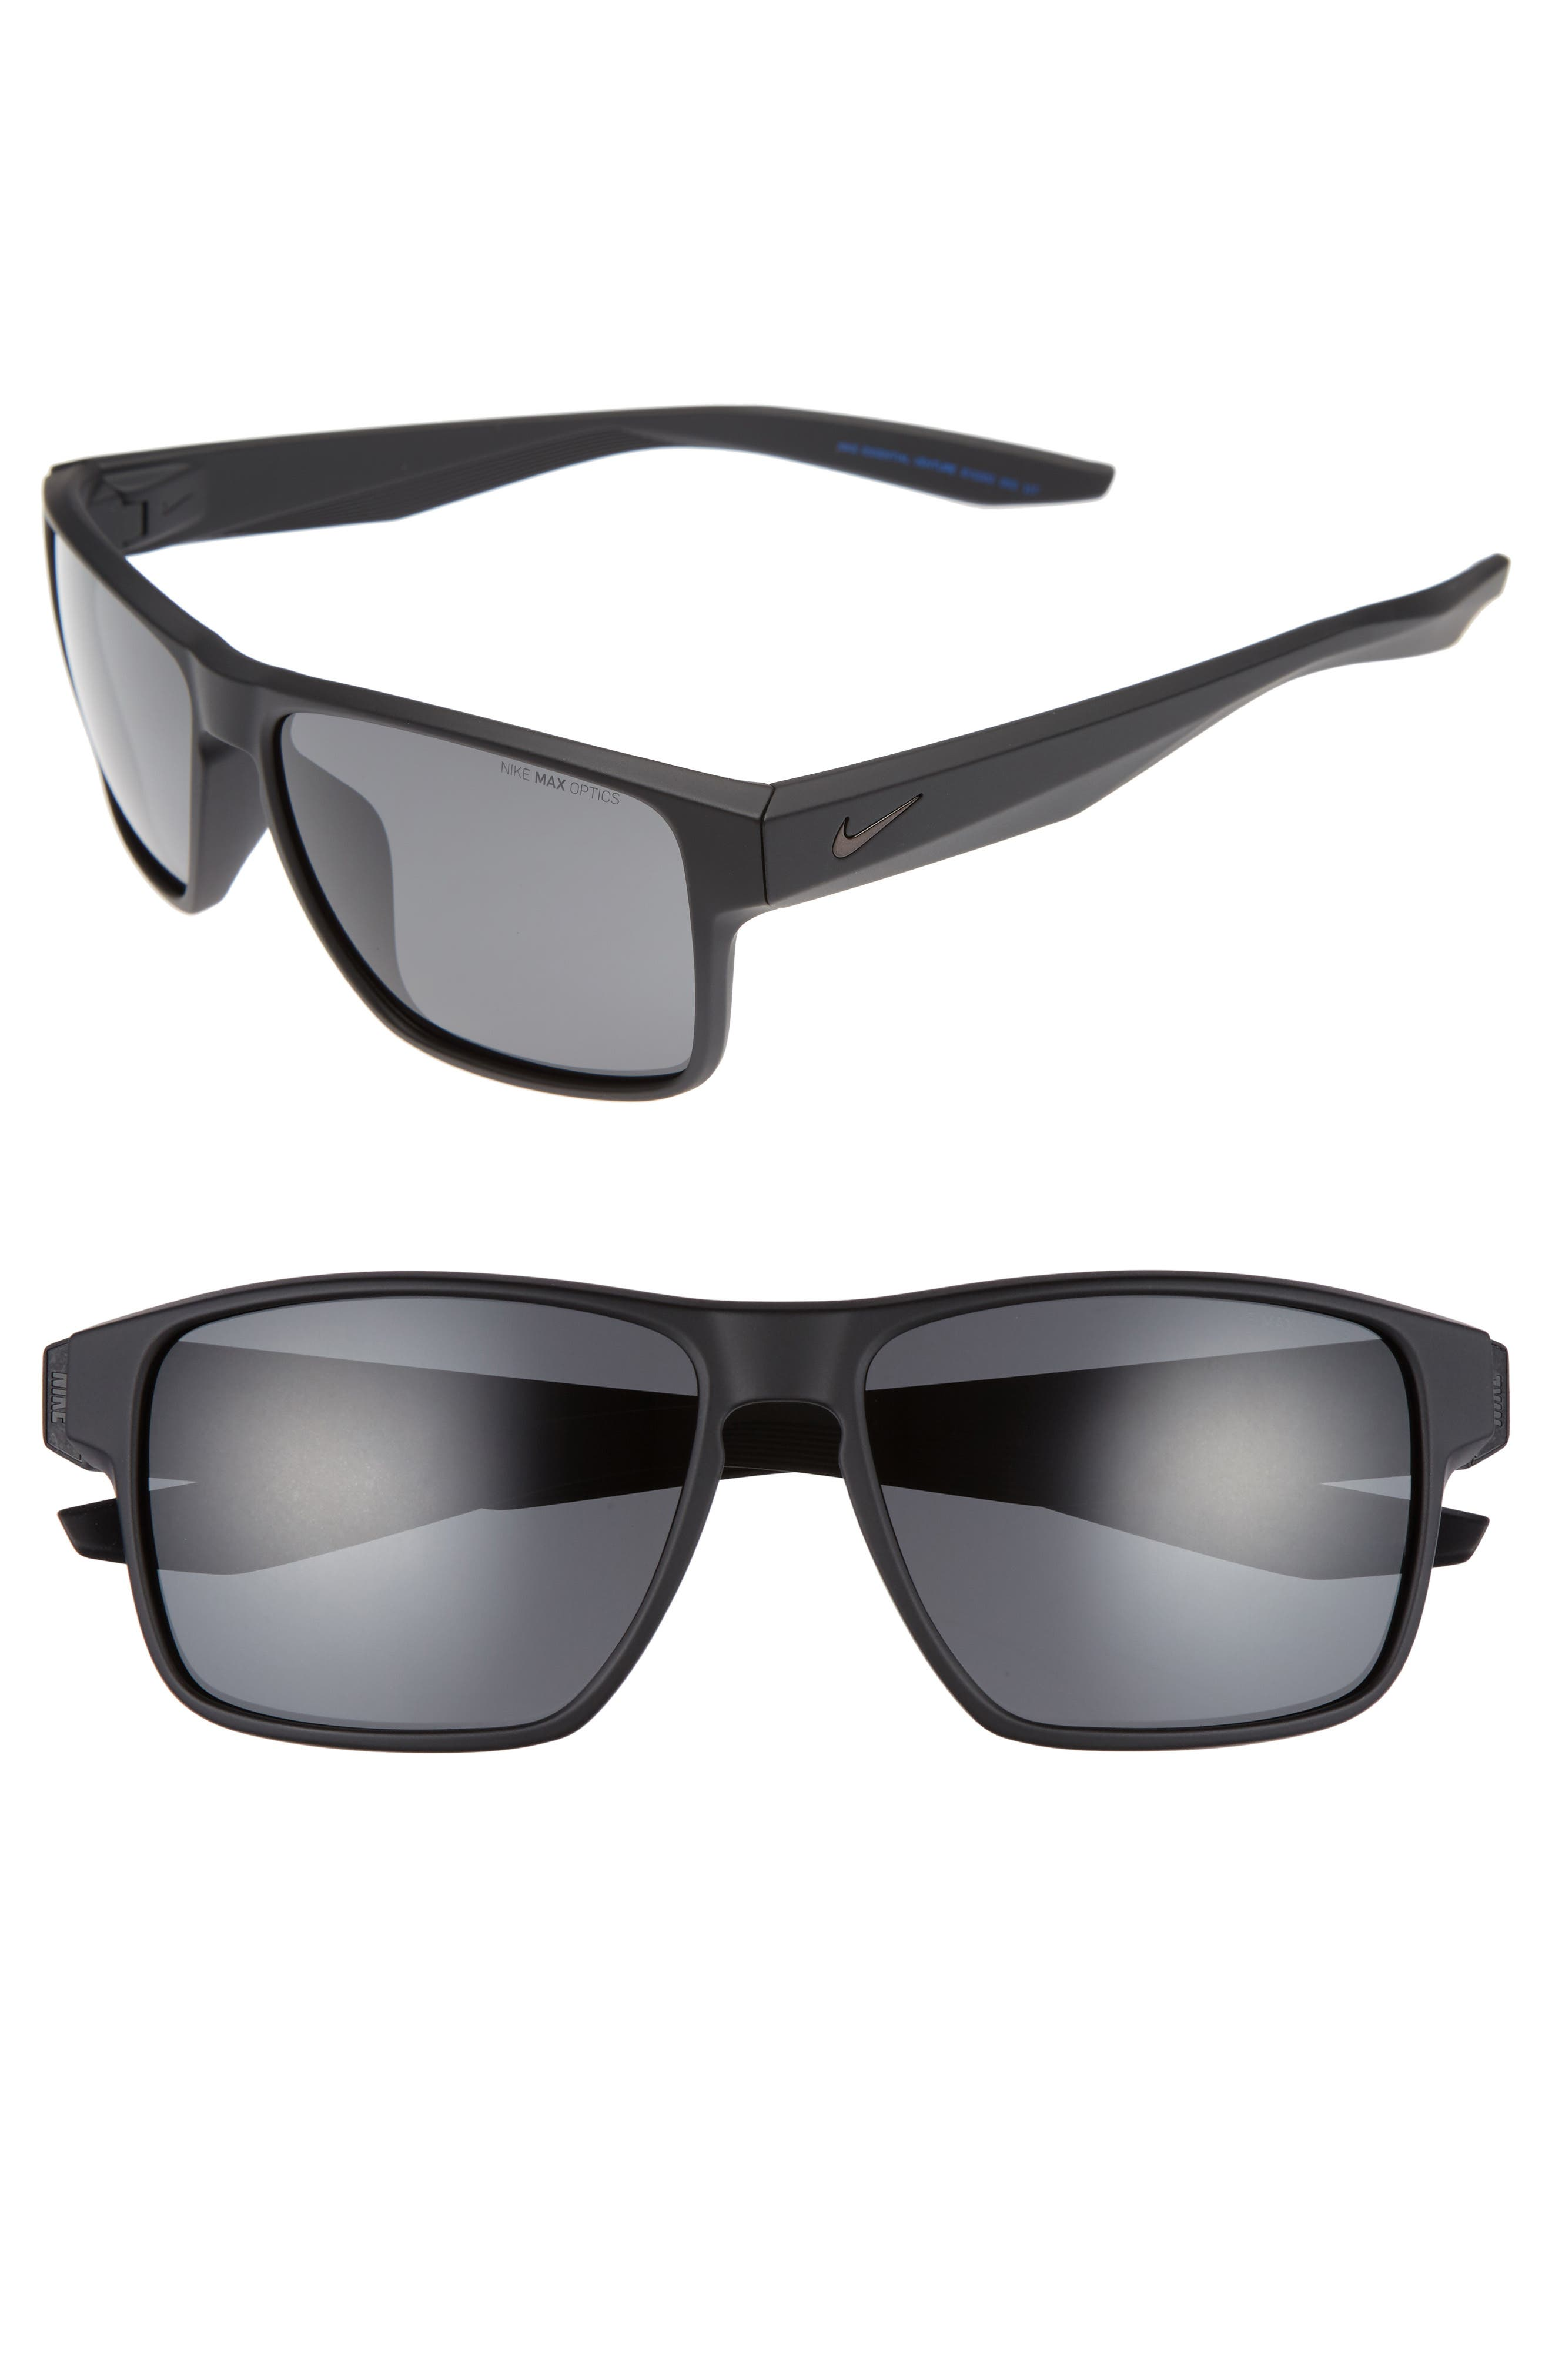 Nike Essential Venture 59mm Sunglasses